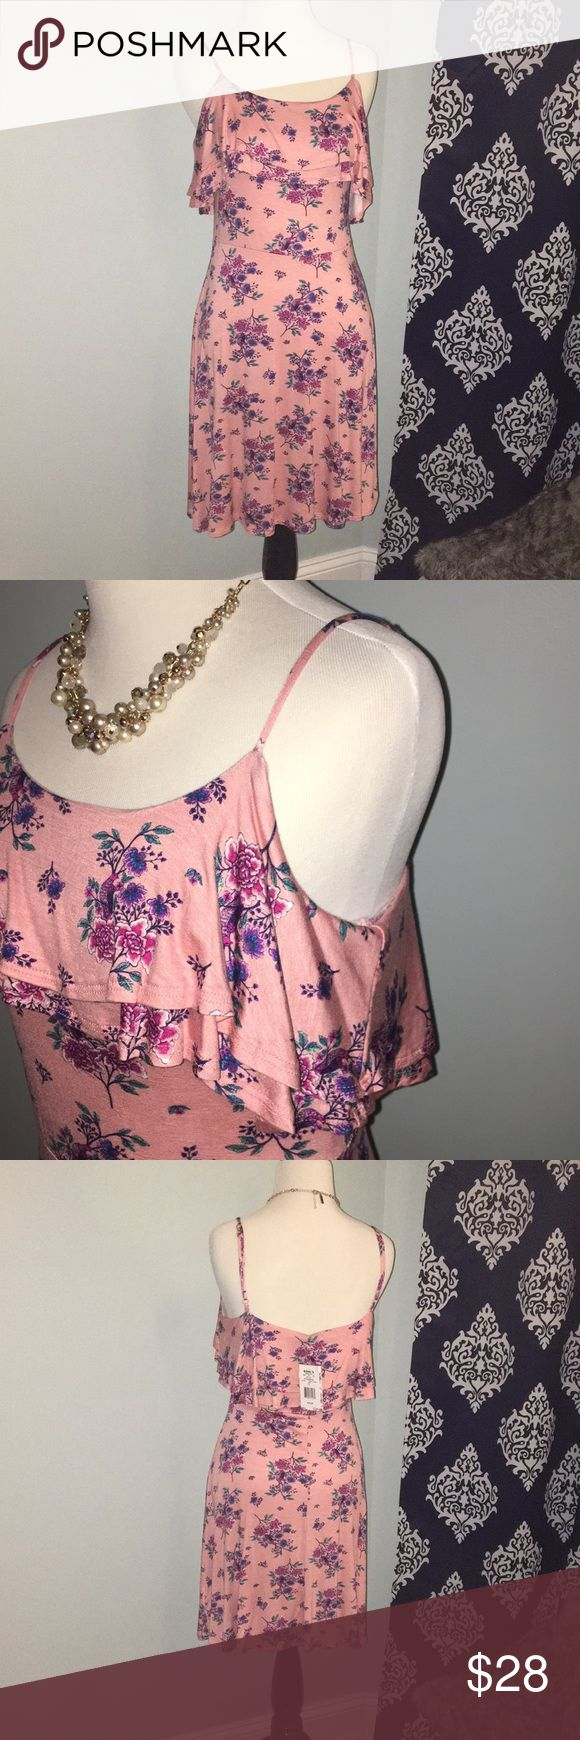 Pink floral tank dress 💜Great condition 10/10 BRAND NEW with tags  🚫No Trades  ✈️NEXT DAY SHIPPING   💜all of my items are cared for, they hang in my guest closet not in a storage box, steamed before packaging.  💵reasonable offers accepted, discounts of multiple items 👍LIKE this item for updates on price drops or ADD ITEMS TO CART for special discounts! Pink Republic Dresses Mini